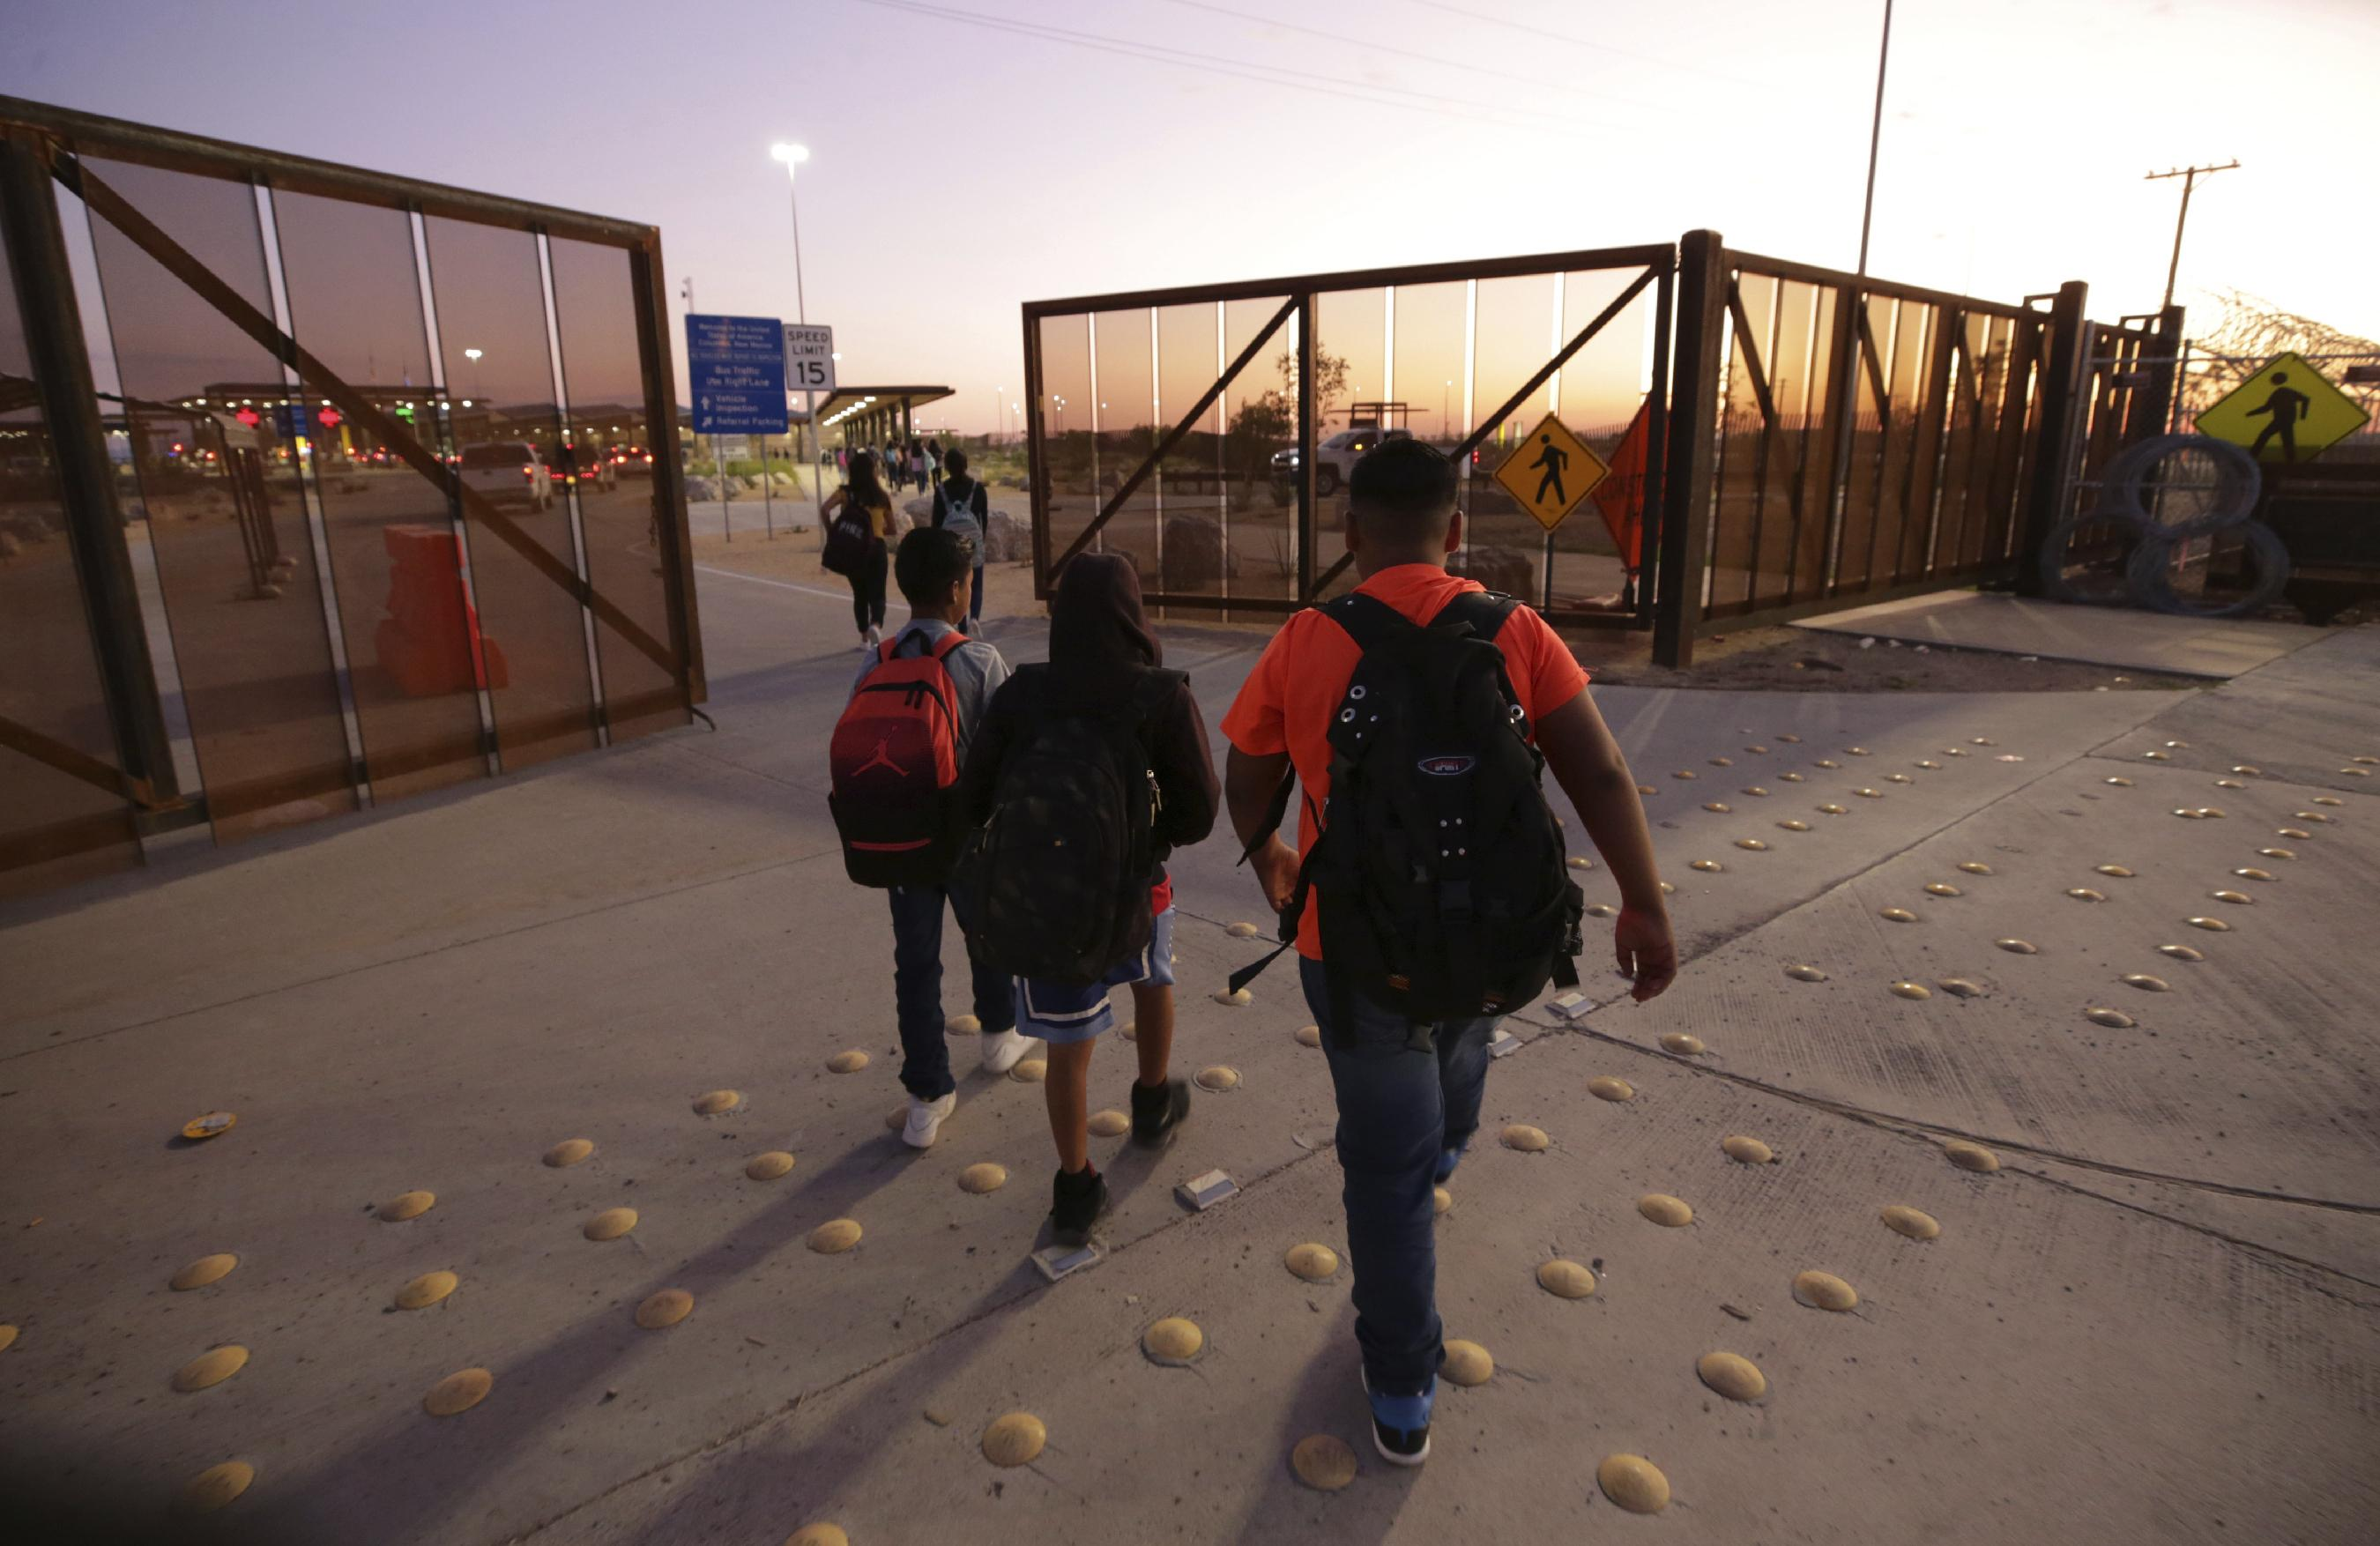 New Mexico border crossing touted as safer, welcoming entry